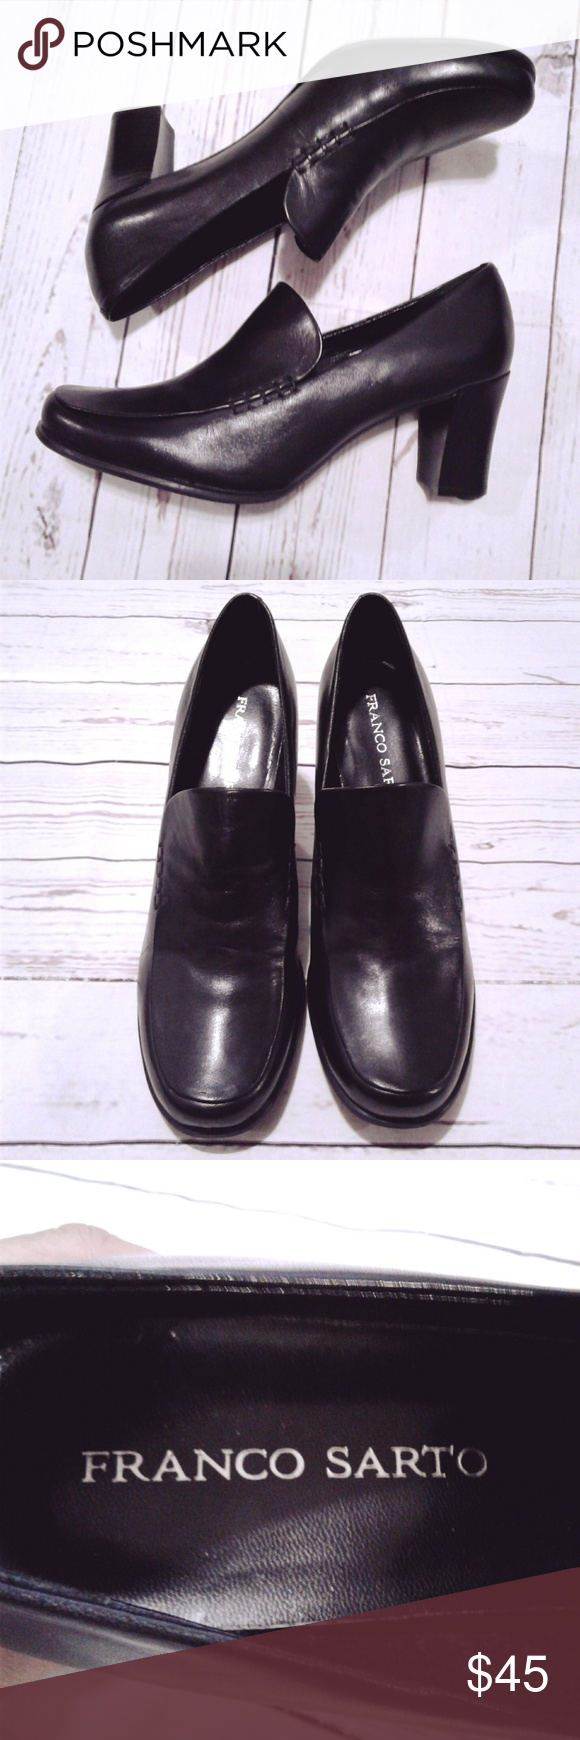 8ba6d540ba3 Franco Sarto Black Leather Nolan Slip On Shoes 9 M Women s Franco Sarto  Shoes Black Leather Nolan Slip On Heeled Loafers Size 9 M Excellent  Condition!